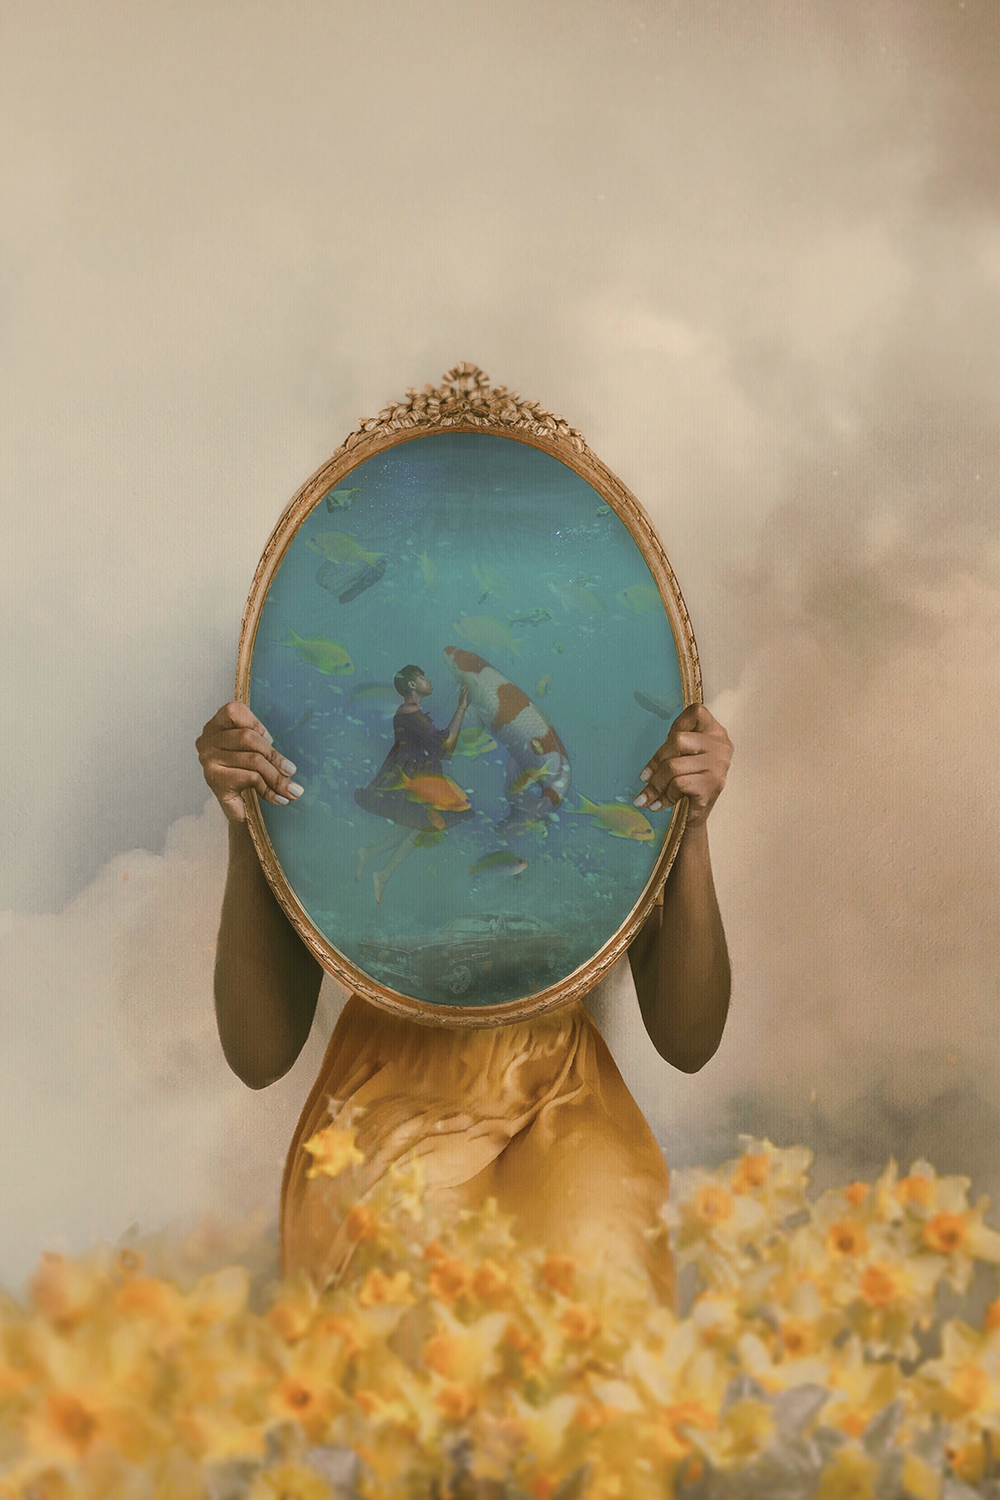 Big Fish by Deandra Lee showcases a woman standing in yellow flowers while holding a gold photo showing a woman underwater with fish